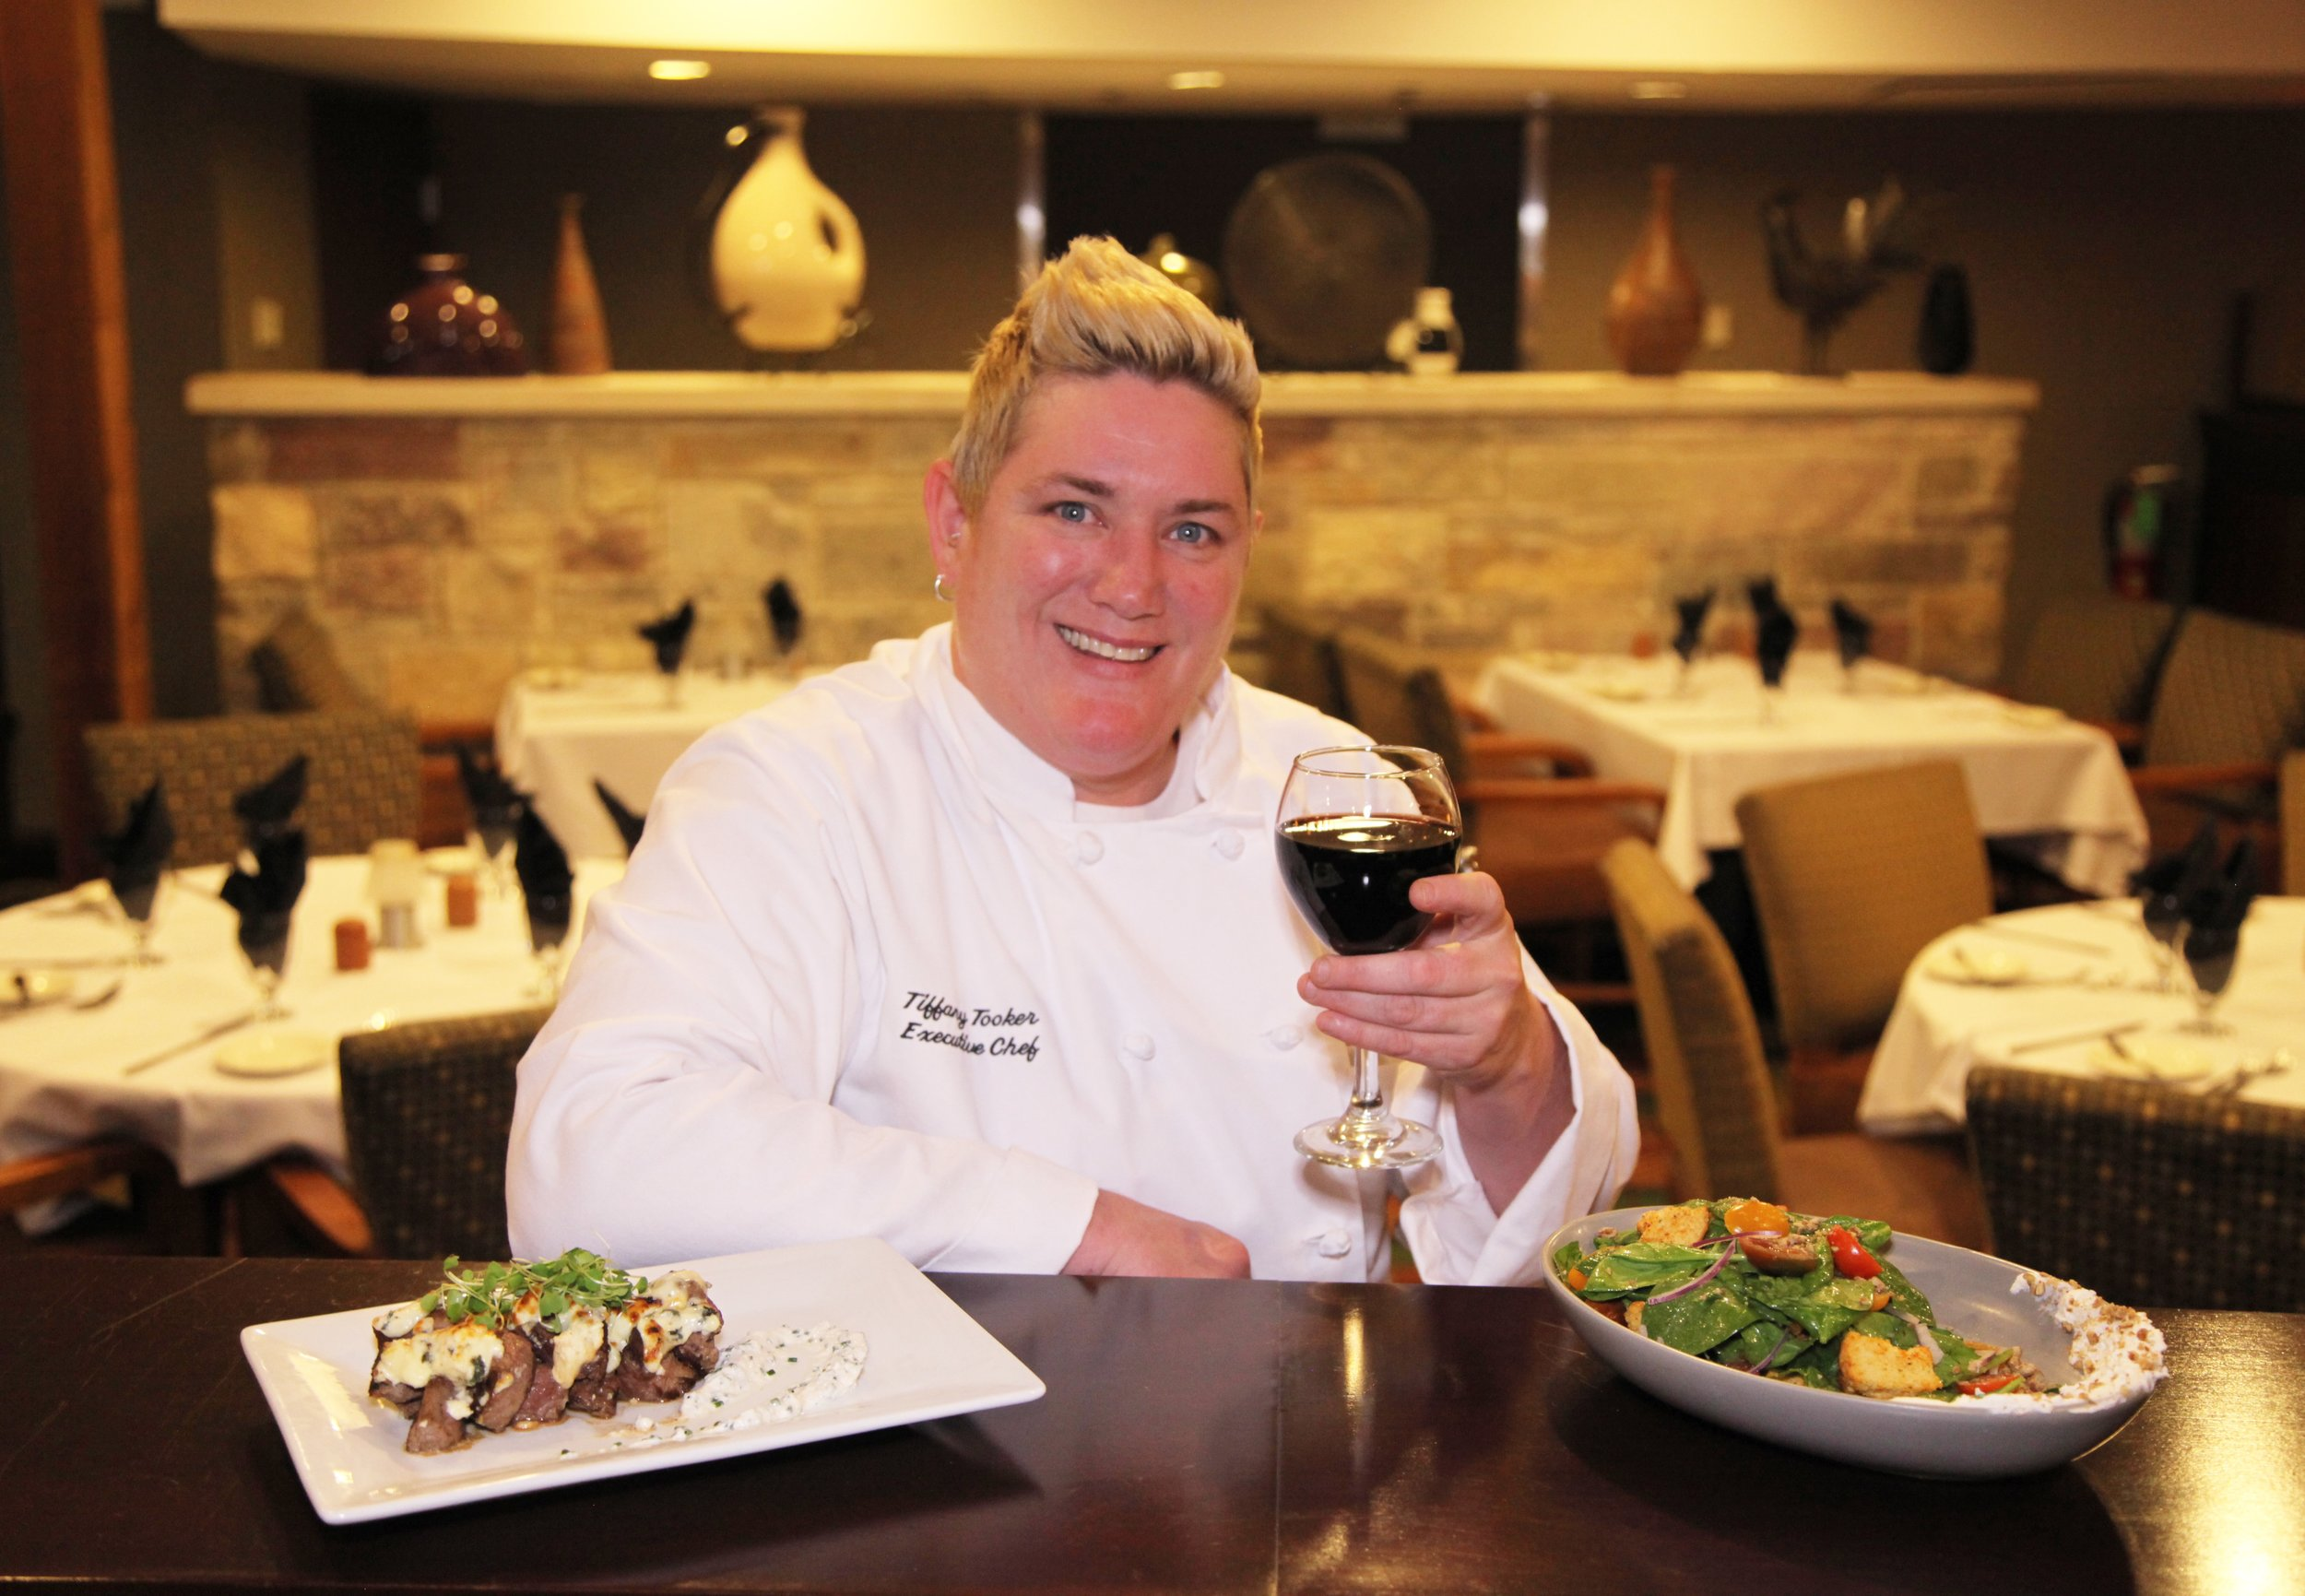 Executive Chef Tiffany Tooker.